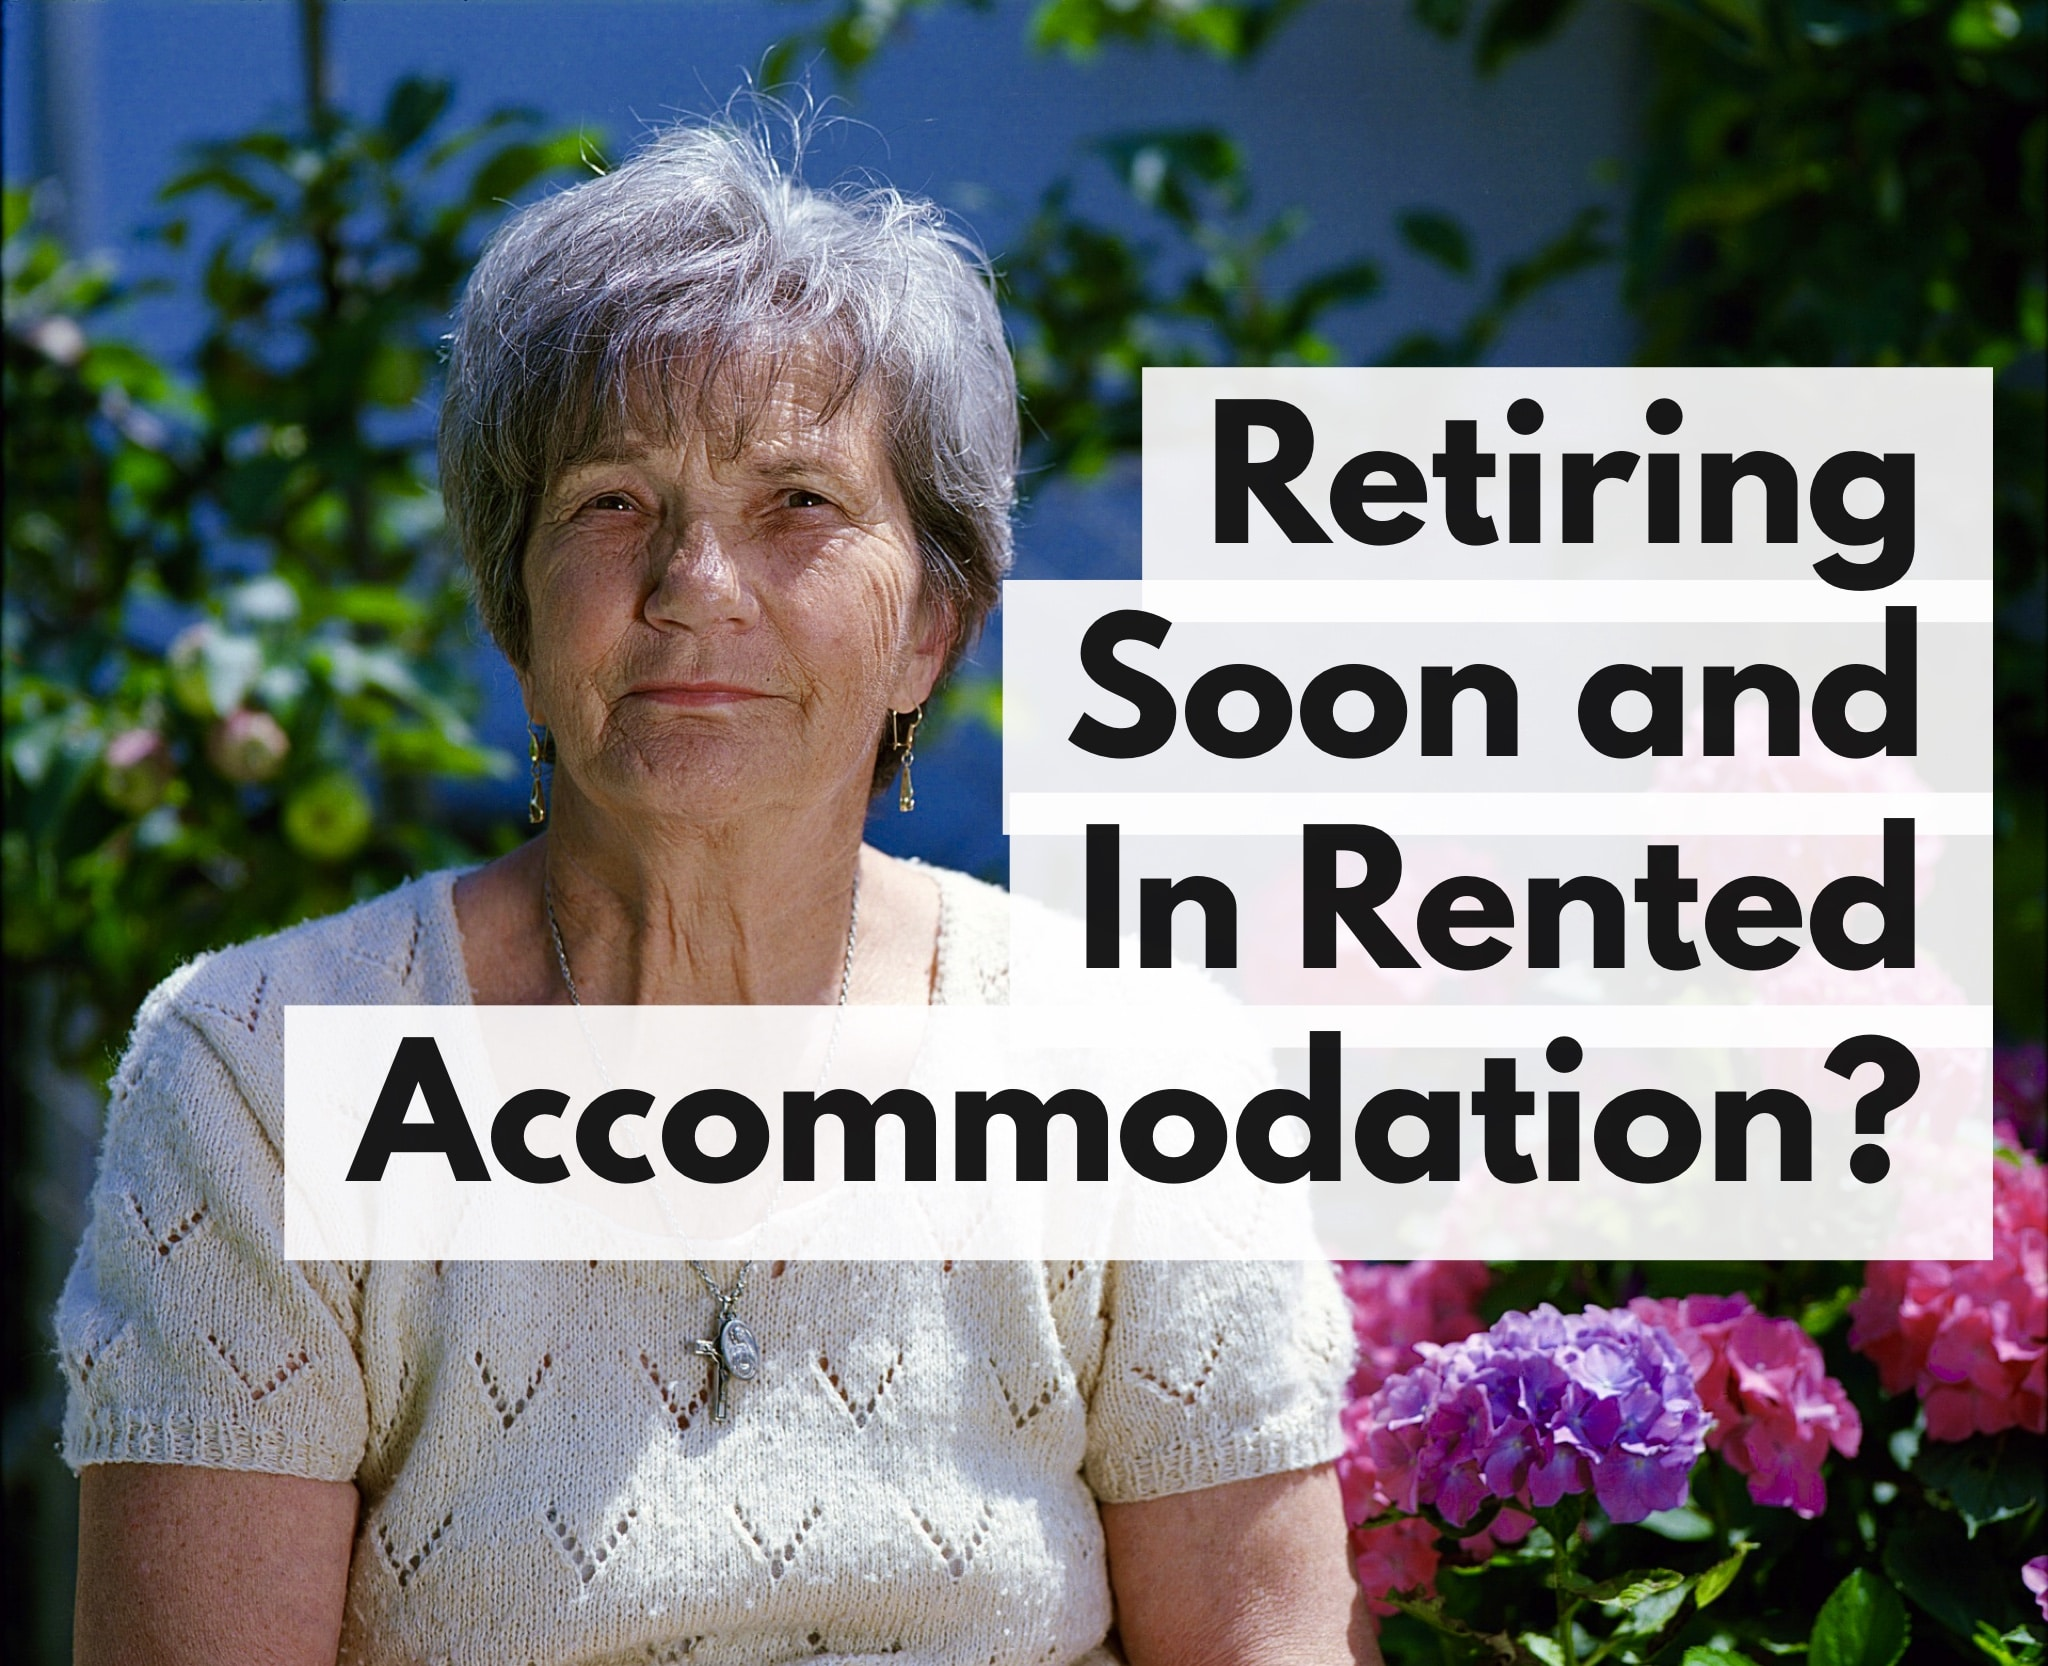 Live in Canterbury? About to Retire and Privately Rent? You Could be £10,500 a Year Worse Off!